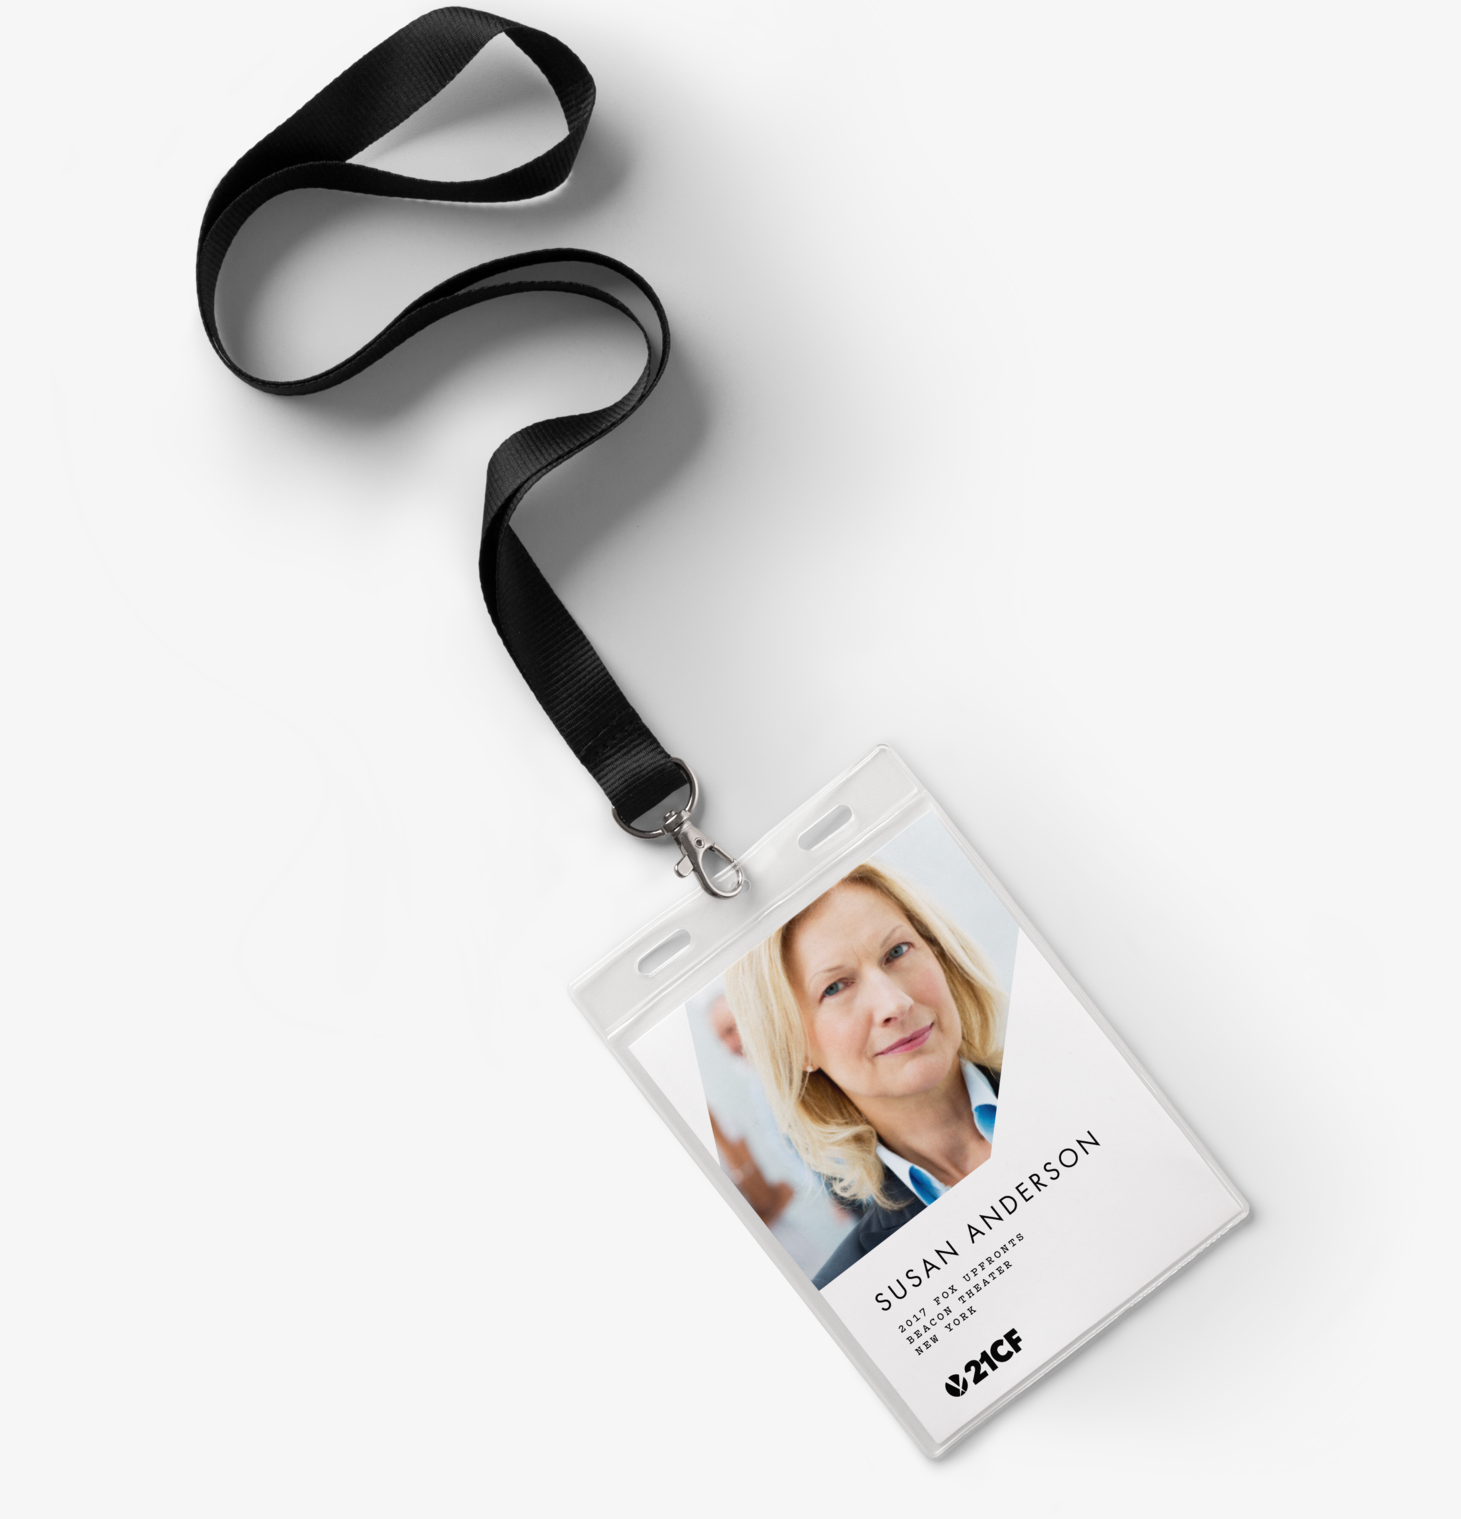 21CF_Brandguide_Events_Namebadges_01.png